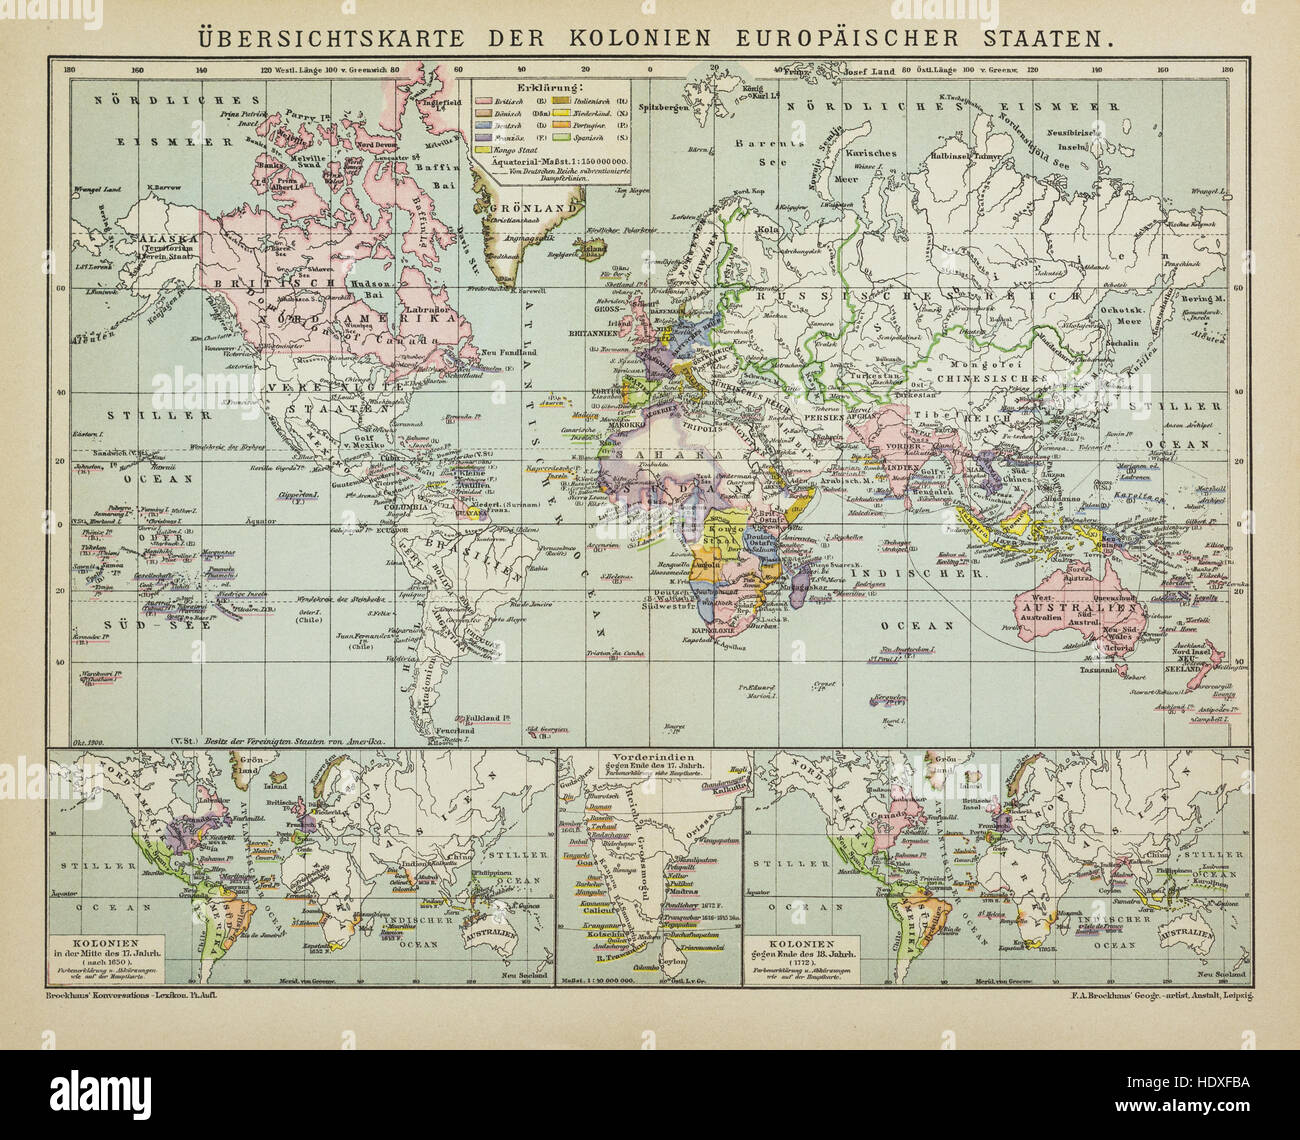 Antique map world colonies of the European states in the 19th Century, from the German Brockhaus Conversation Encyclopedia - Stock Image